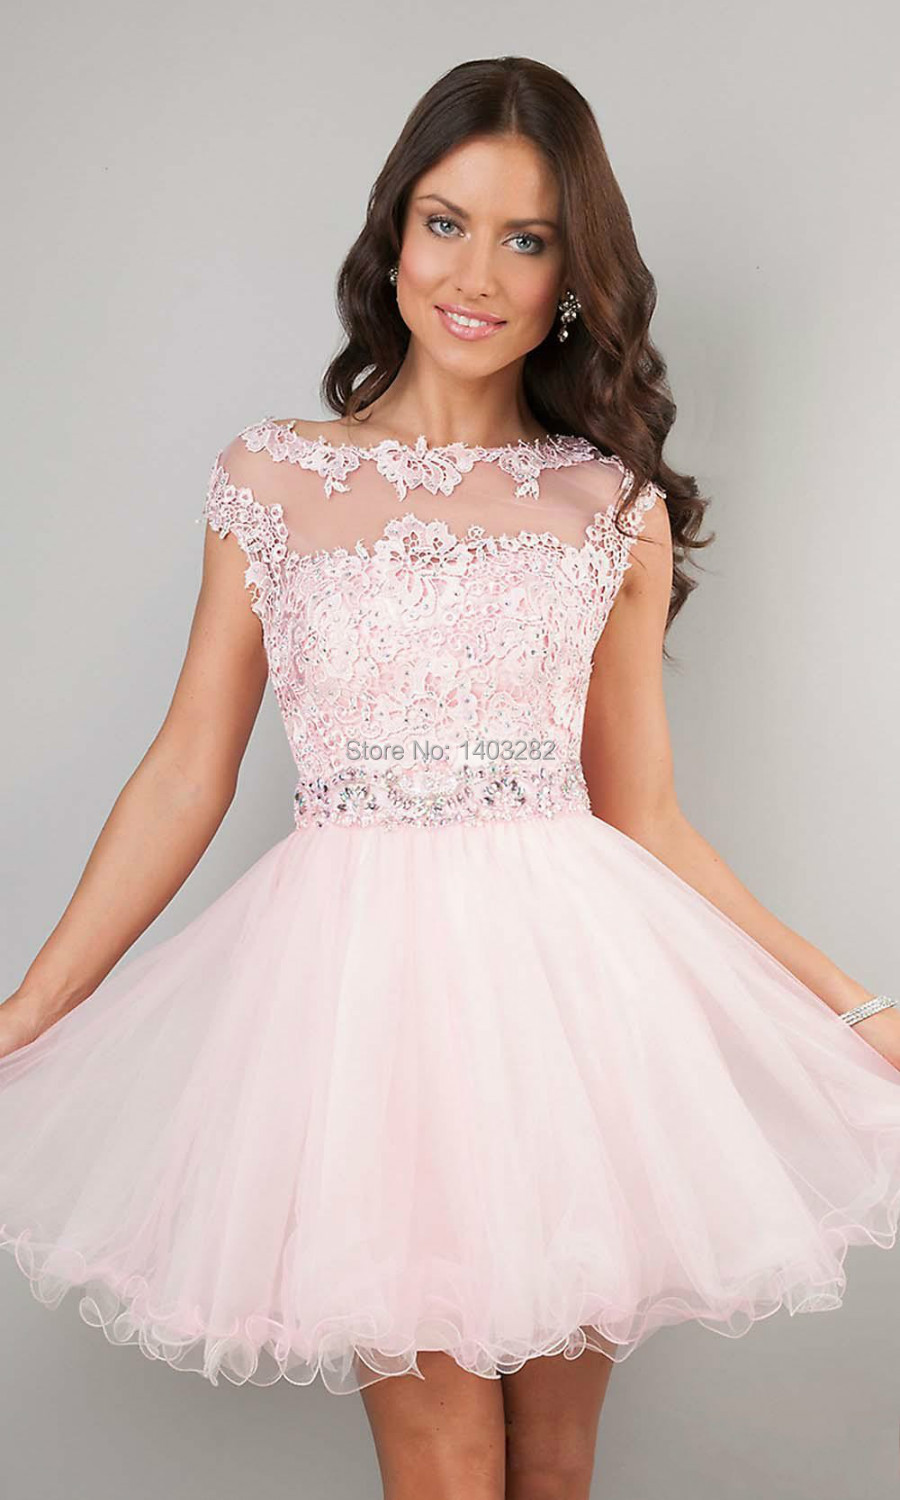 Cheap Semi Formal Dresses For Juniors - Cocktail Dresses 2016